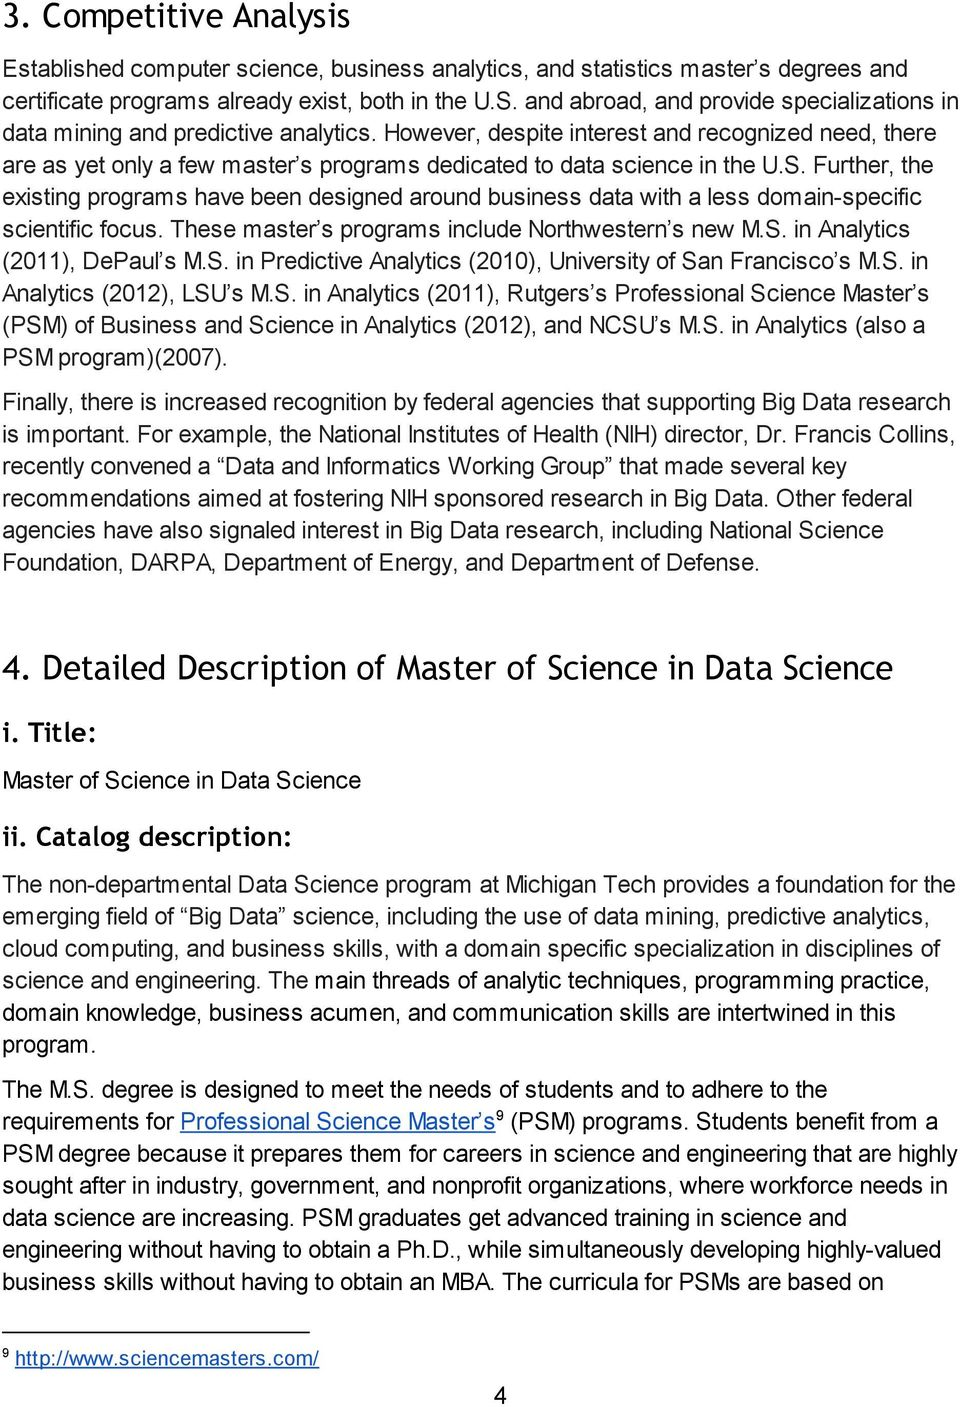 However, despite interest and recognized need, there are as yet only a few master s programs dedicated to data science in the U.S.